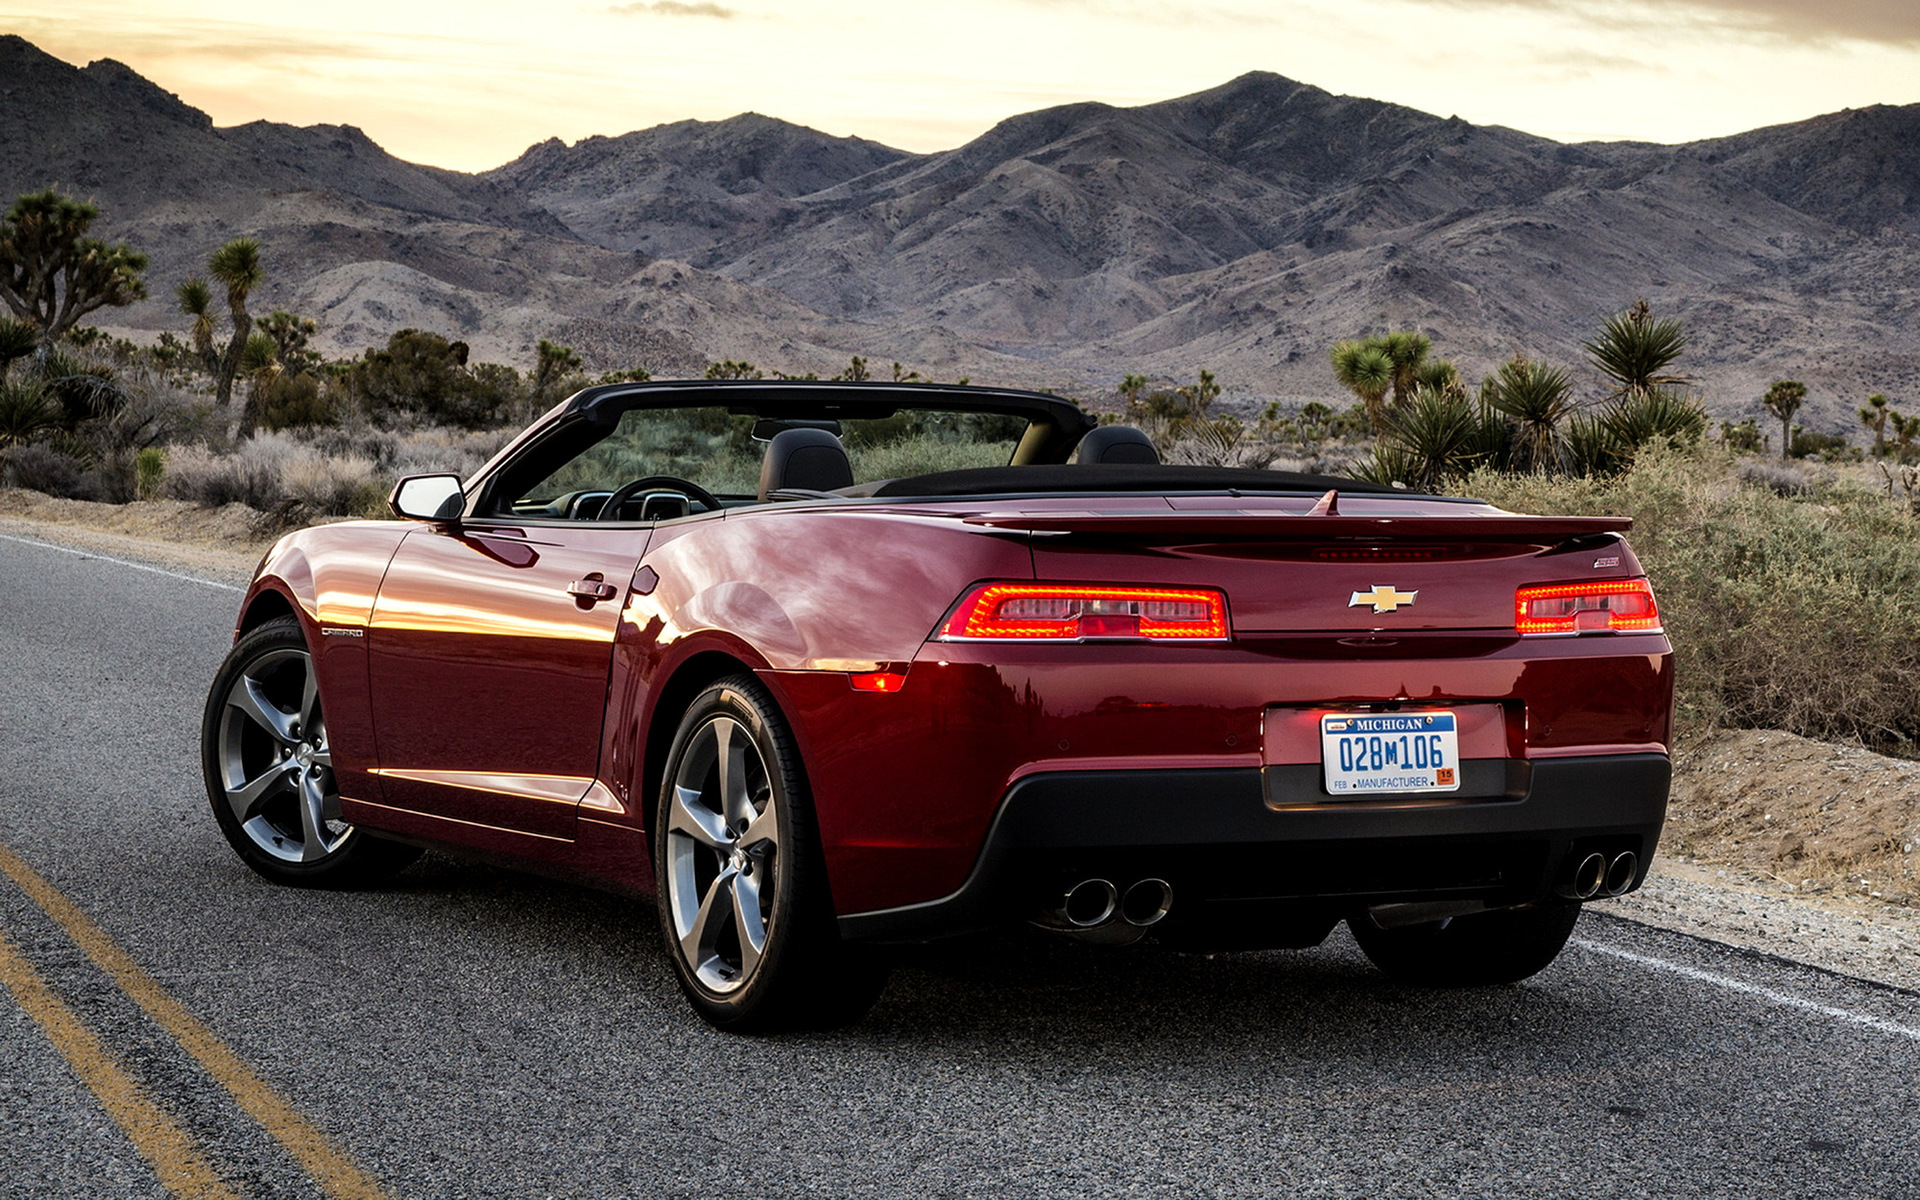 2014 Chevrolet Camaro Ss Convertible Wallpapers And Hd